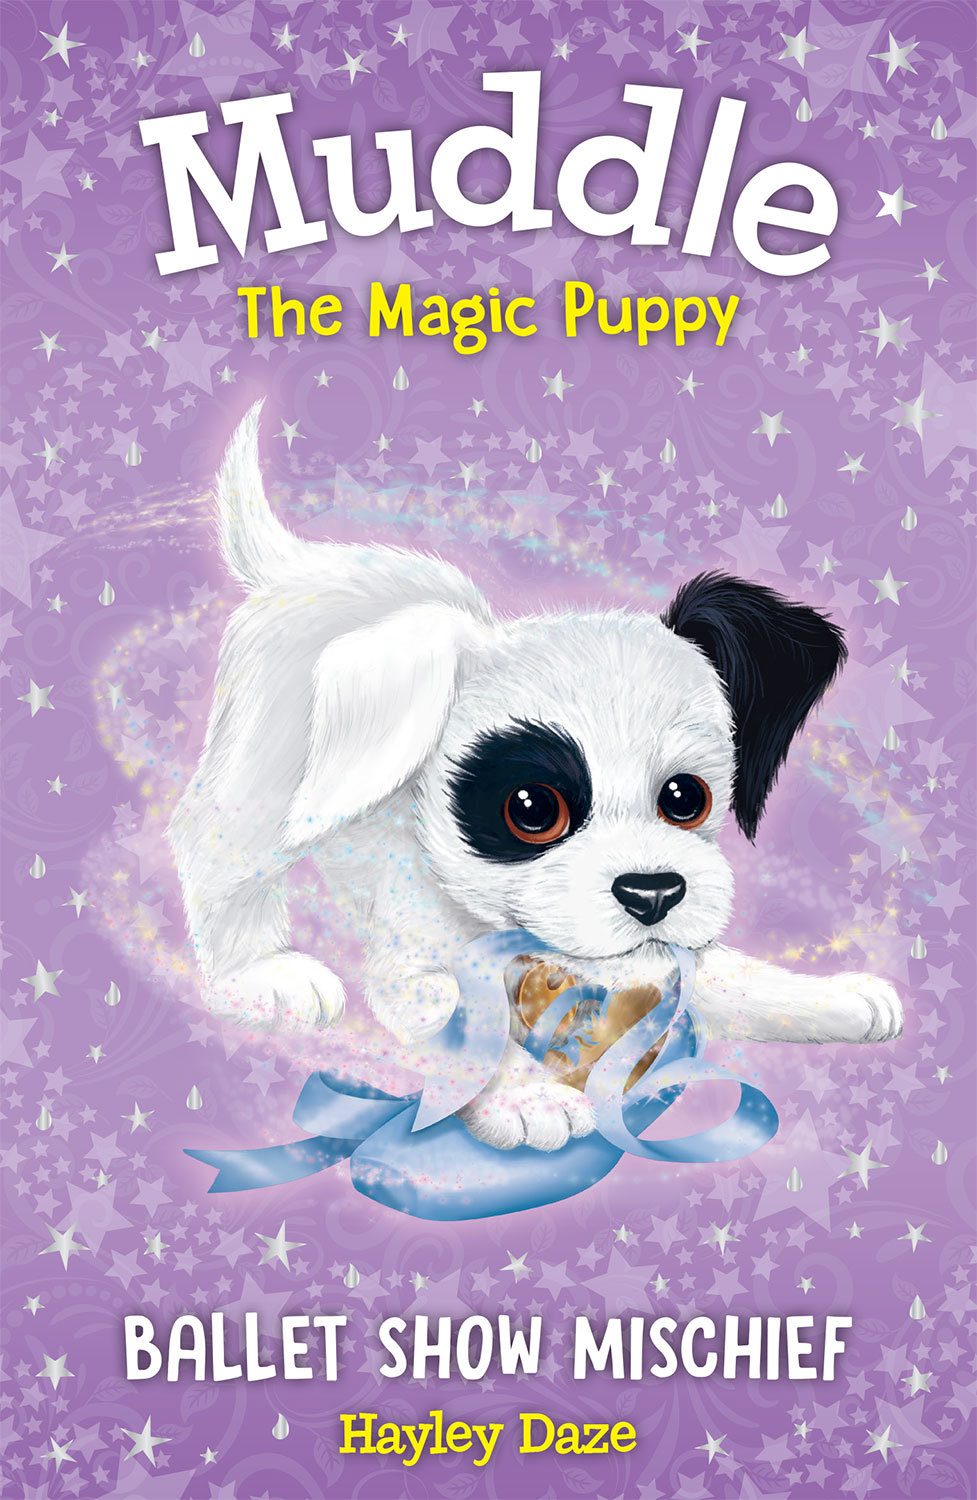 Muddle the Magic Puppy Book 3: Ballet Show Mischief